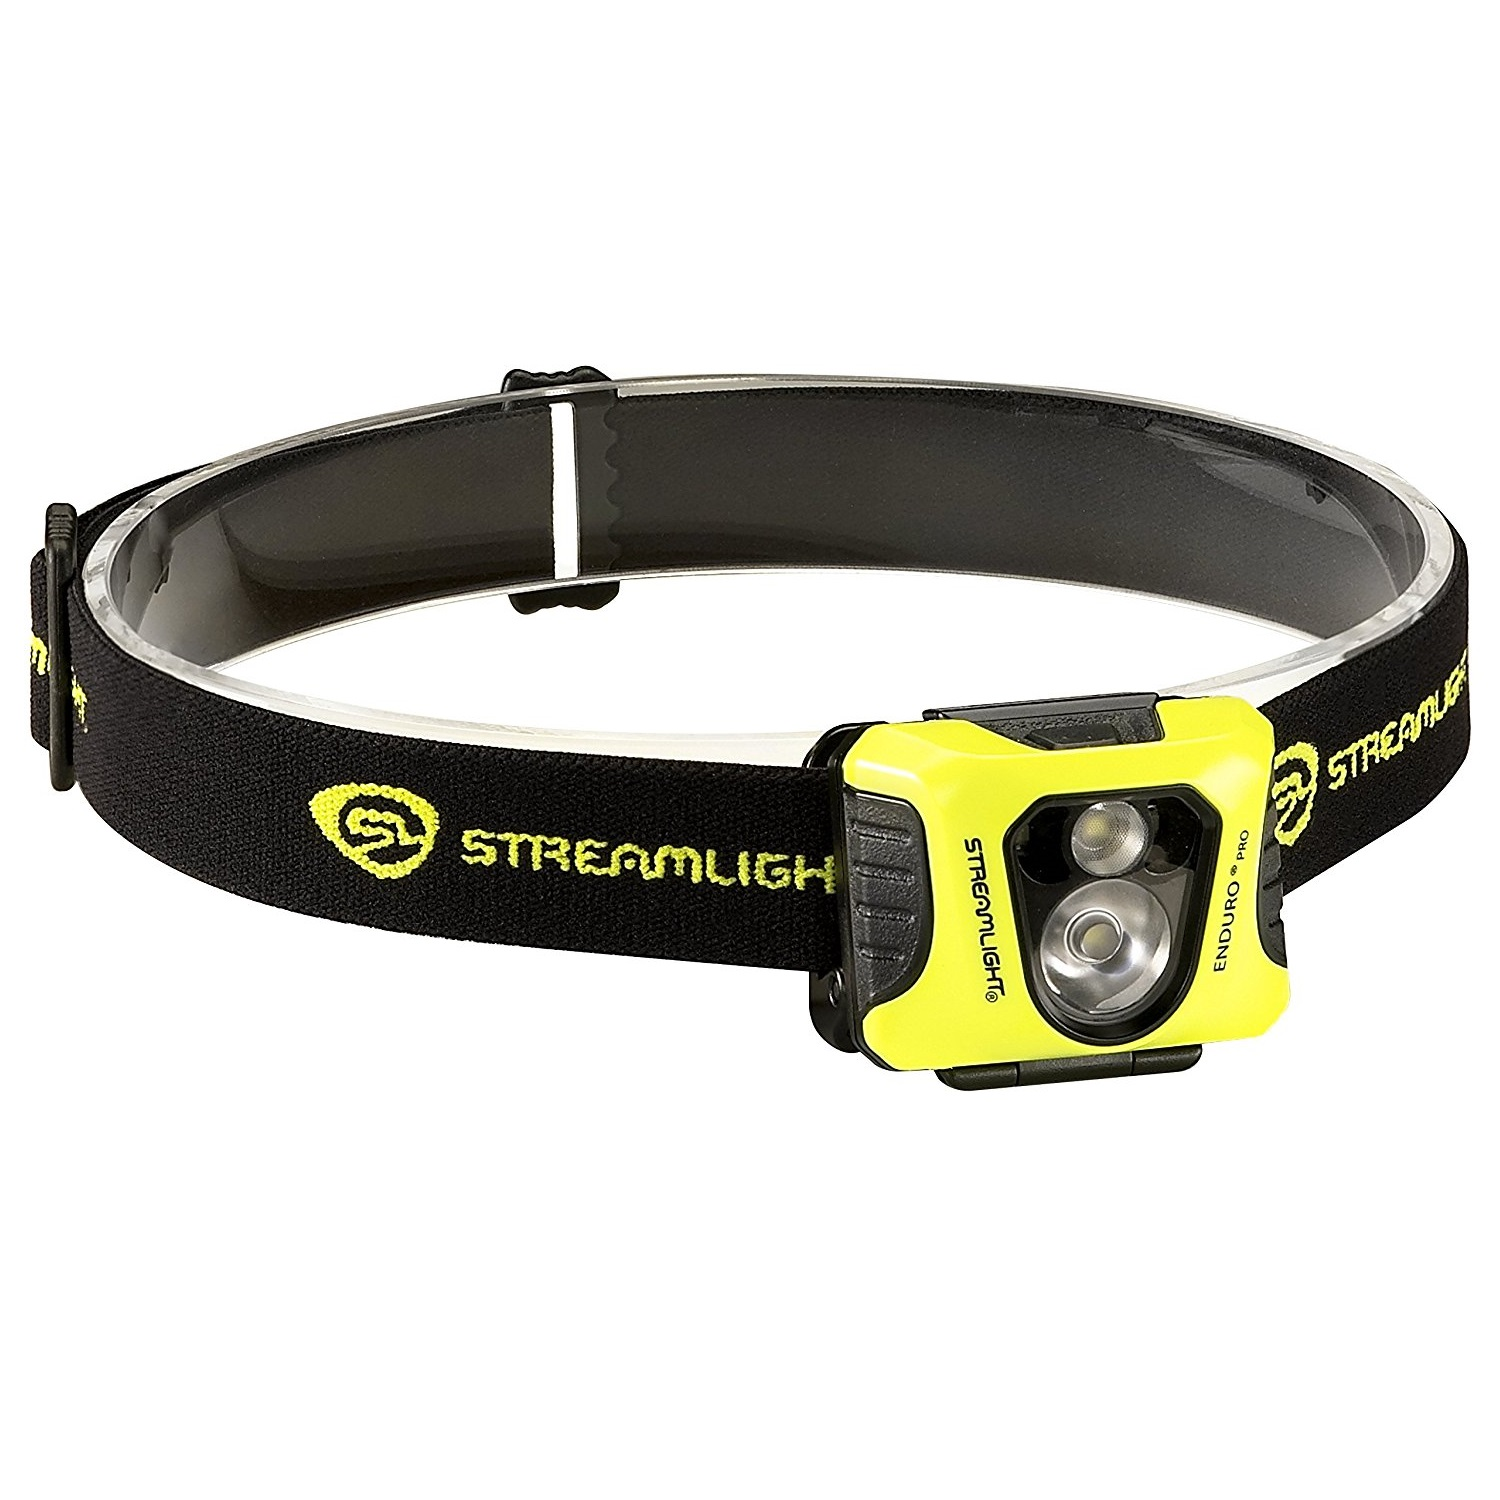 Streamlight Enduro Pro Headlamp, Red Wht LEDs, Yellow Blk by Streamlight